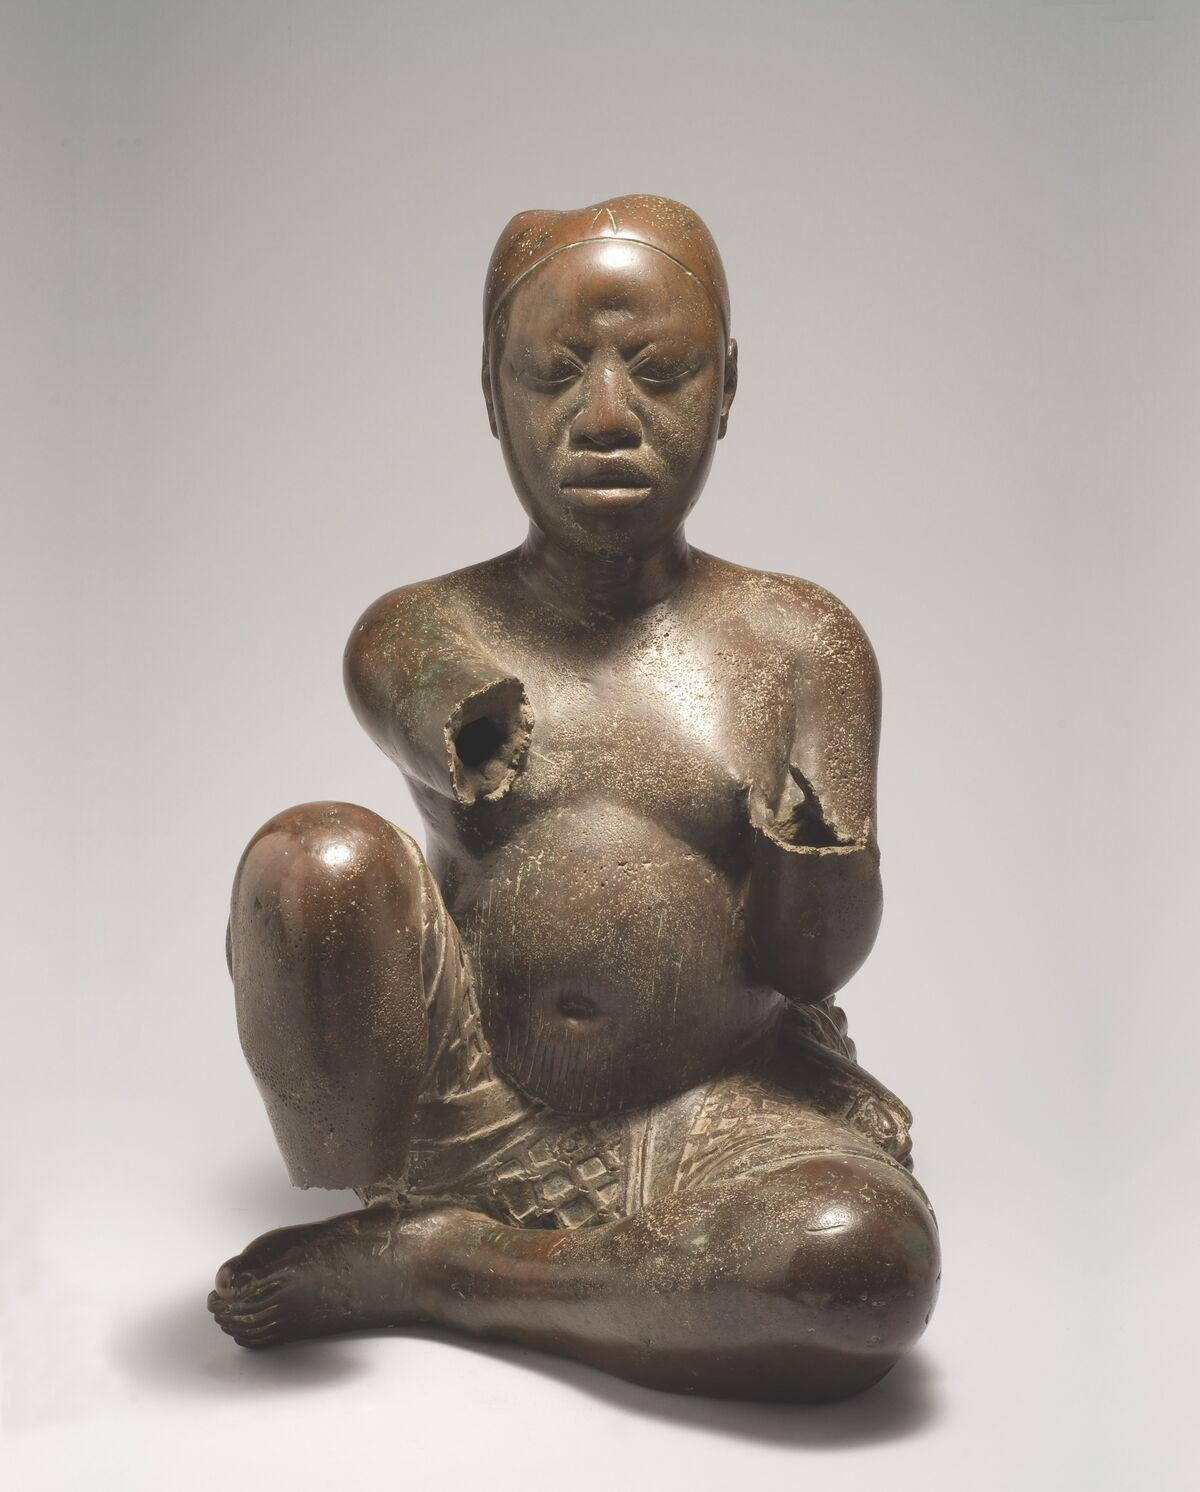 Seated Figure, Possibily Ife, Tada Nigeria, Late 13th–14th century. Courtesy of the National Commission for Museums and Monuments and the Block Museum.